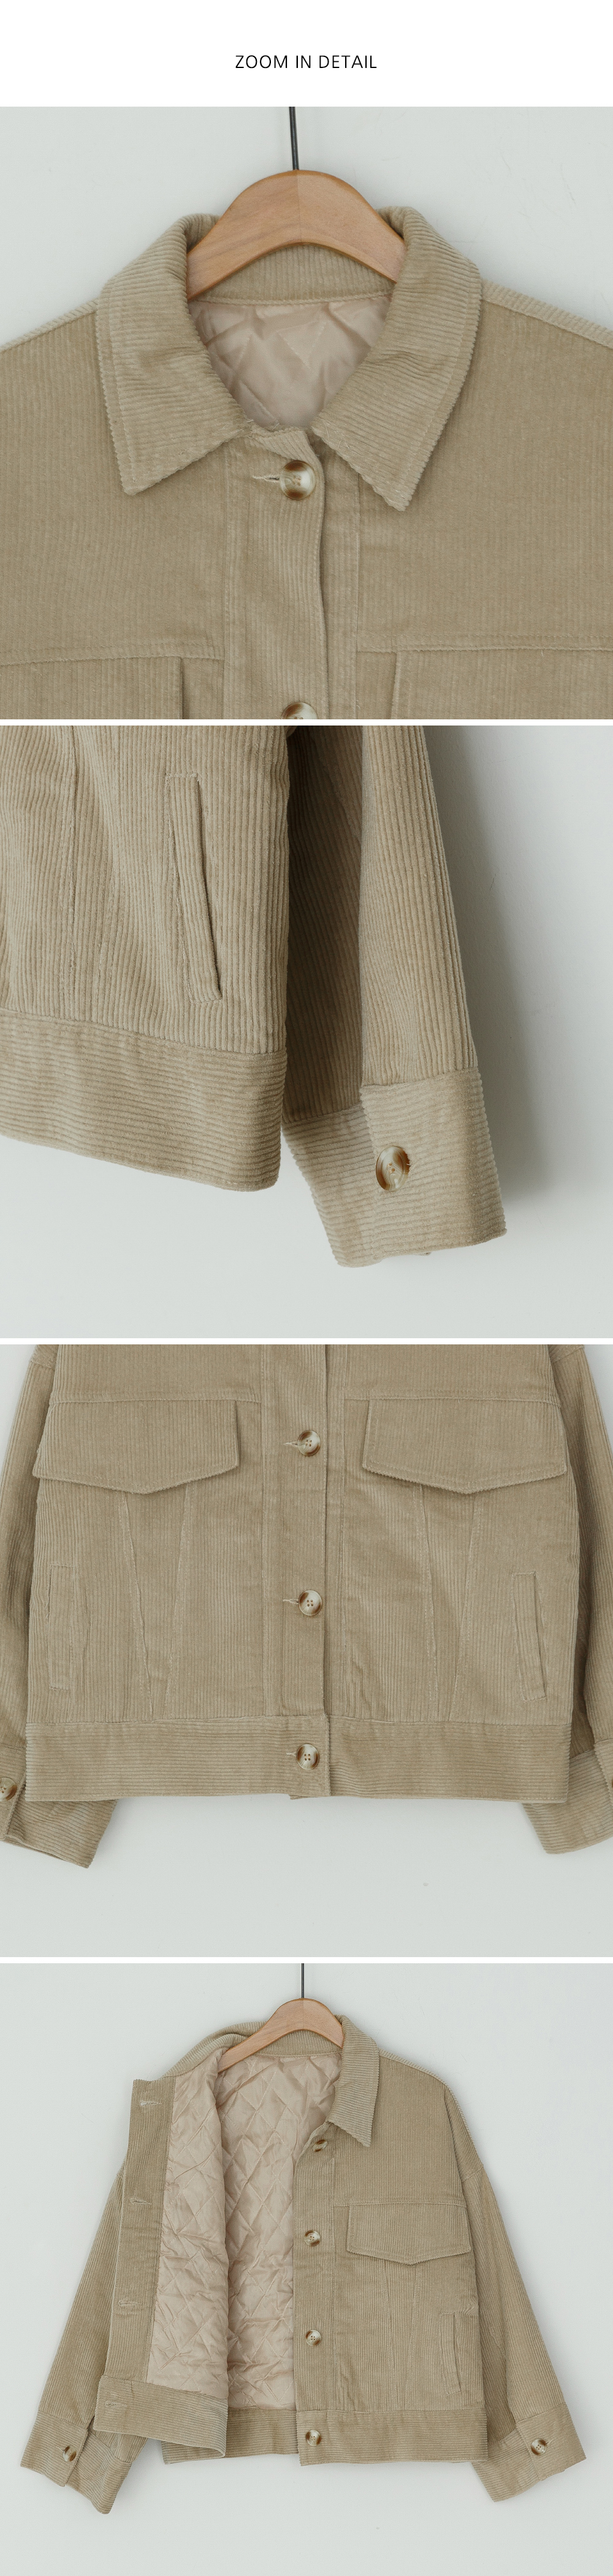 Quilted lining corduroy jacket-jk